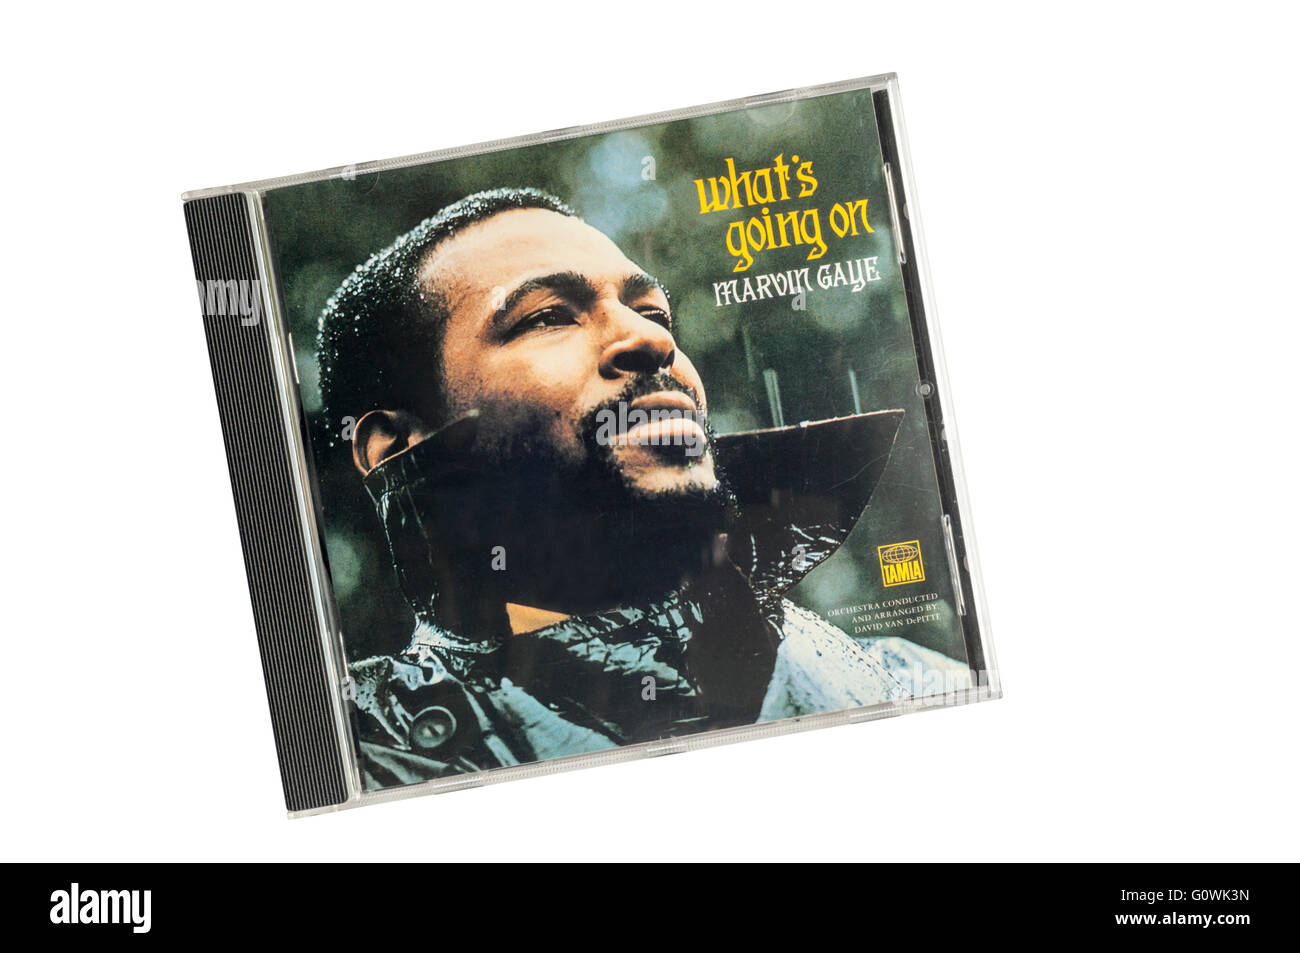 What's Going On was the eleventh studio album by soul musician Marvin Gaye. It was released in 1971. - Stock Image